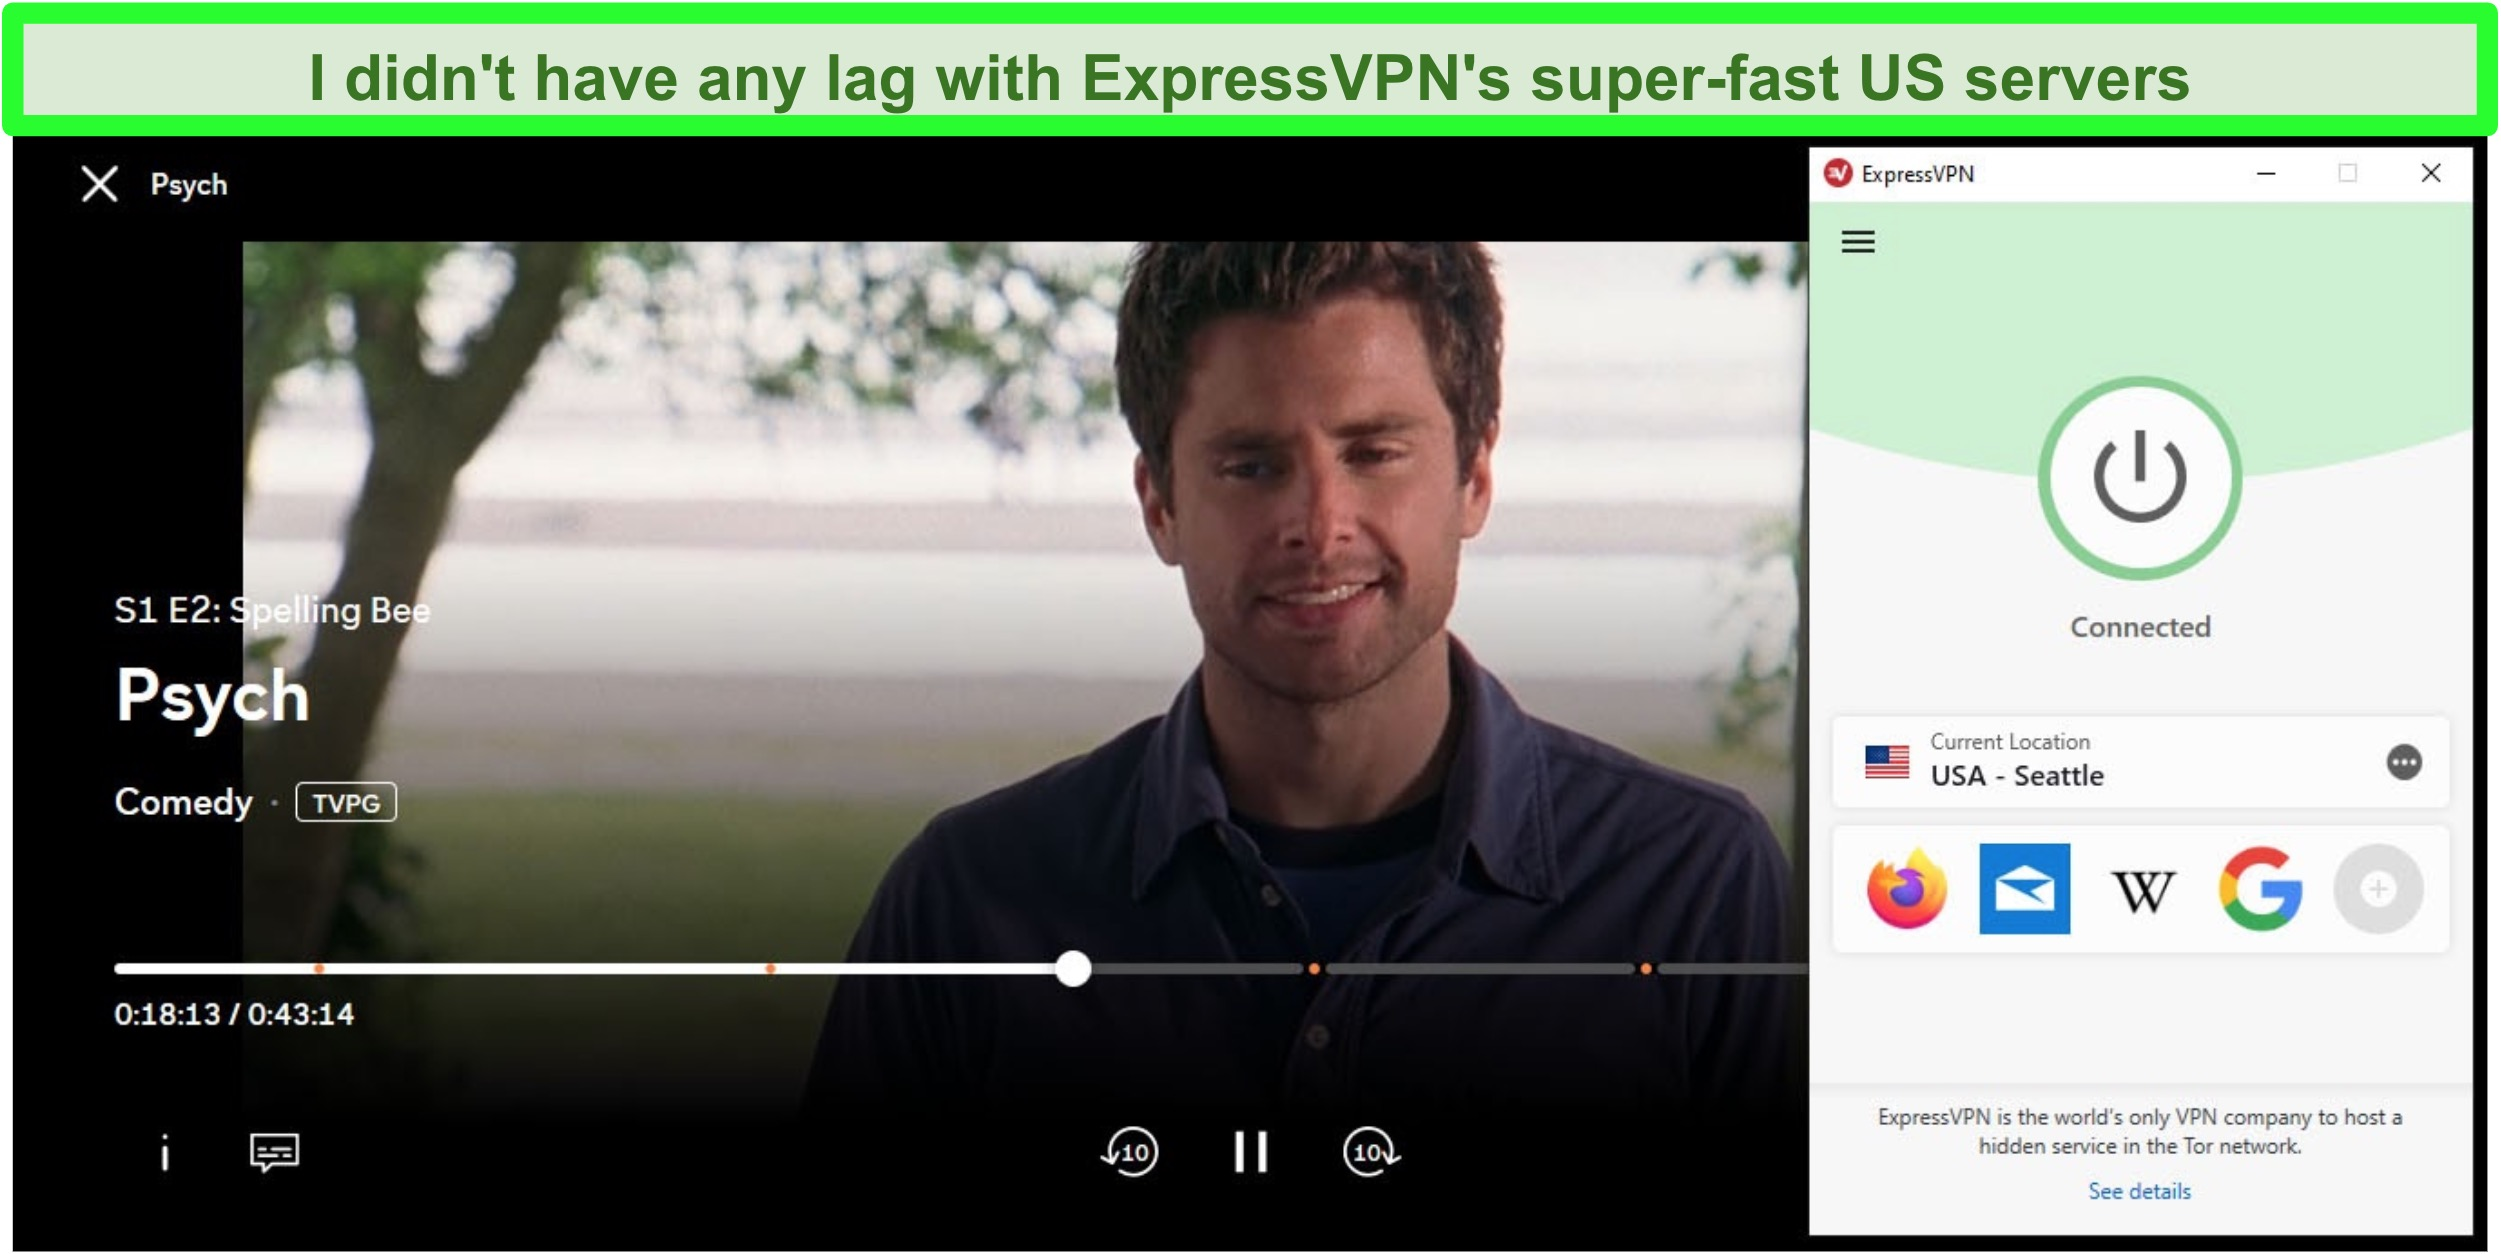 Sreenshot of Psych playing on Peacock while connected to ExpressVPN's USA Seattle server